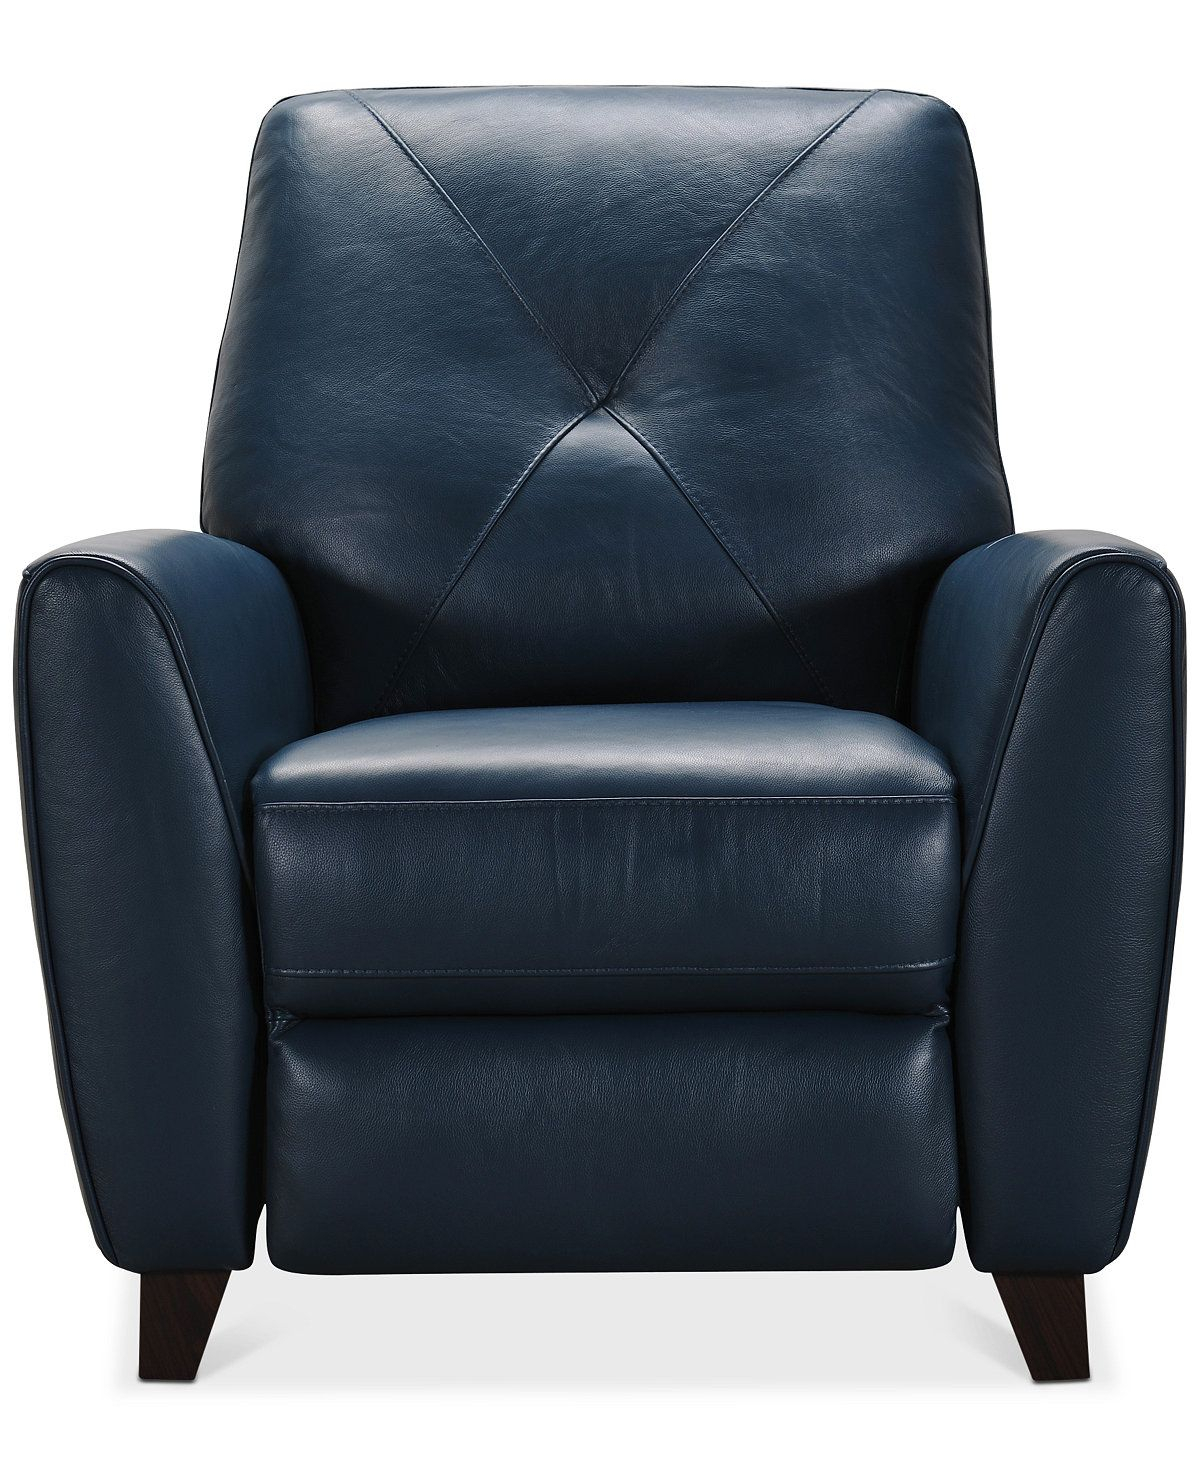 Furniture Myia Leather Pushback Recliner, Created For Macy'S For Myia Armchairs (View 11 of 15)